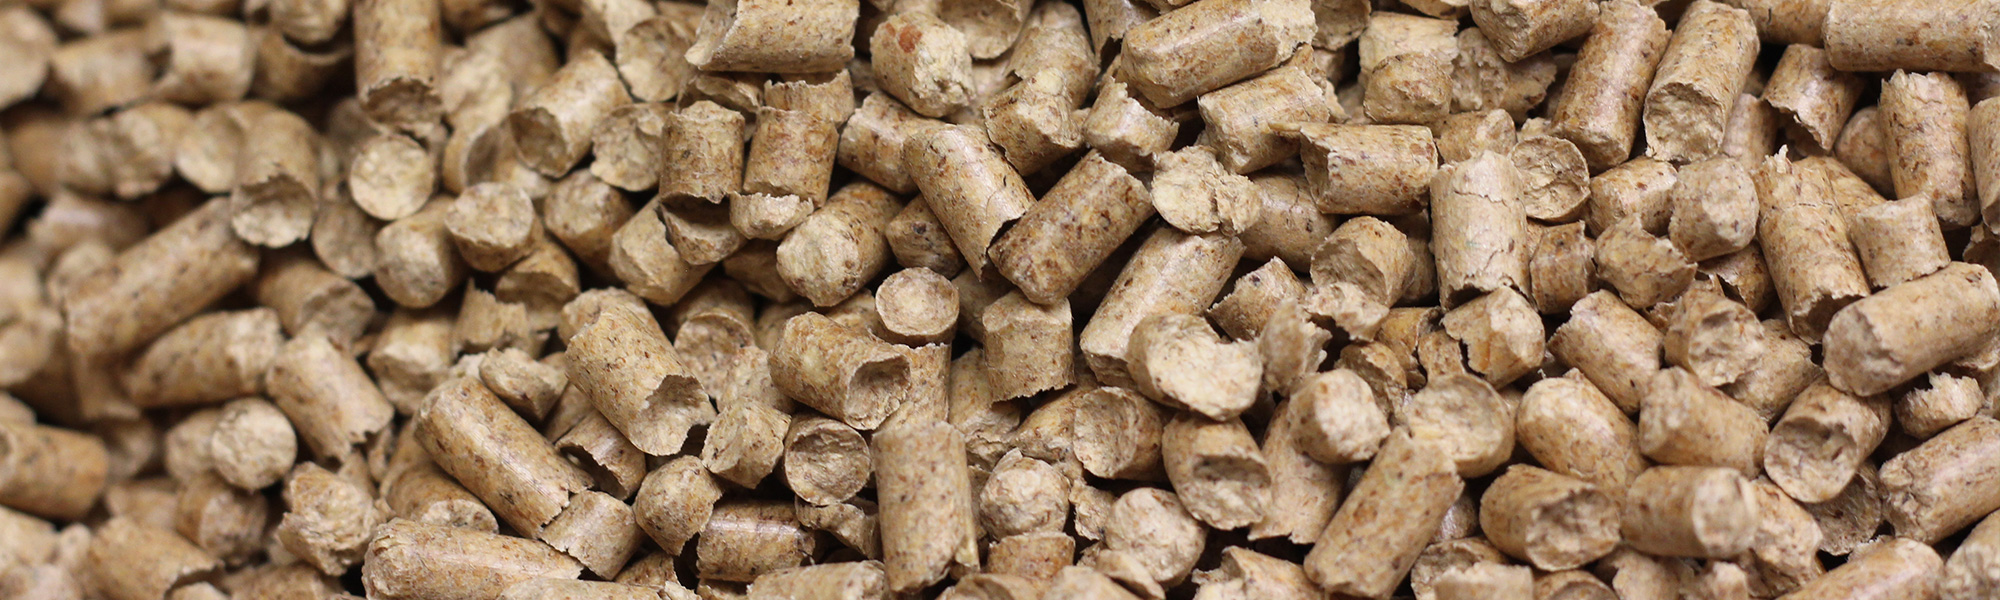 Timber Wood Pellets ~ News and updates ecowood pellets